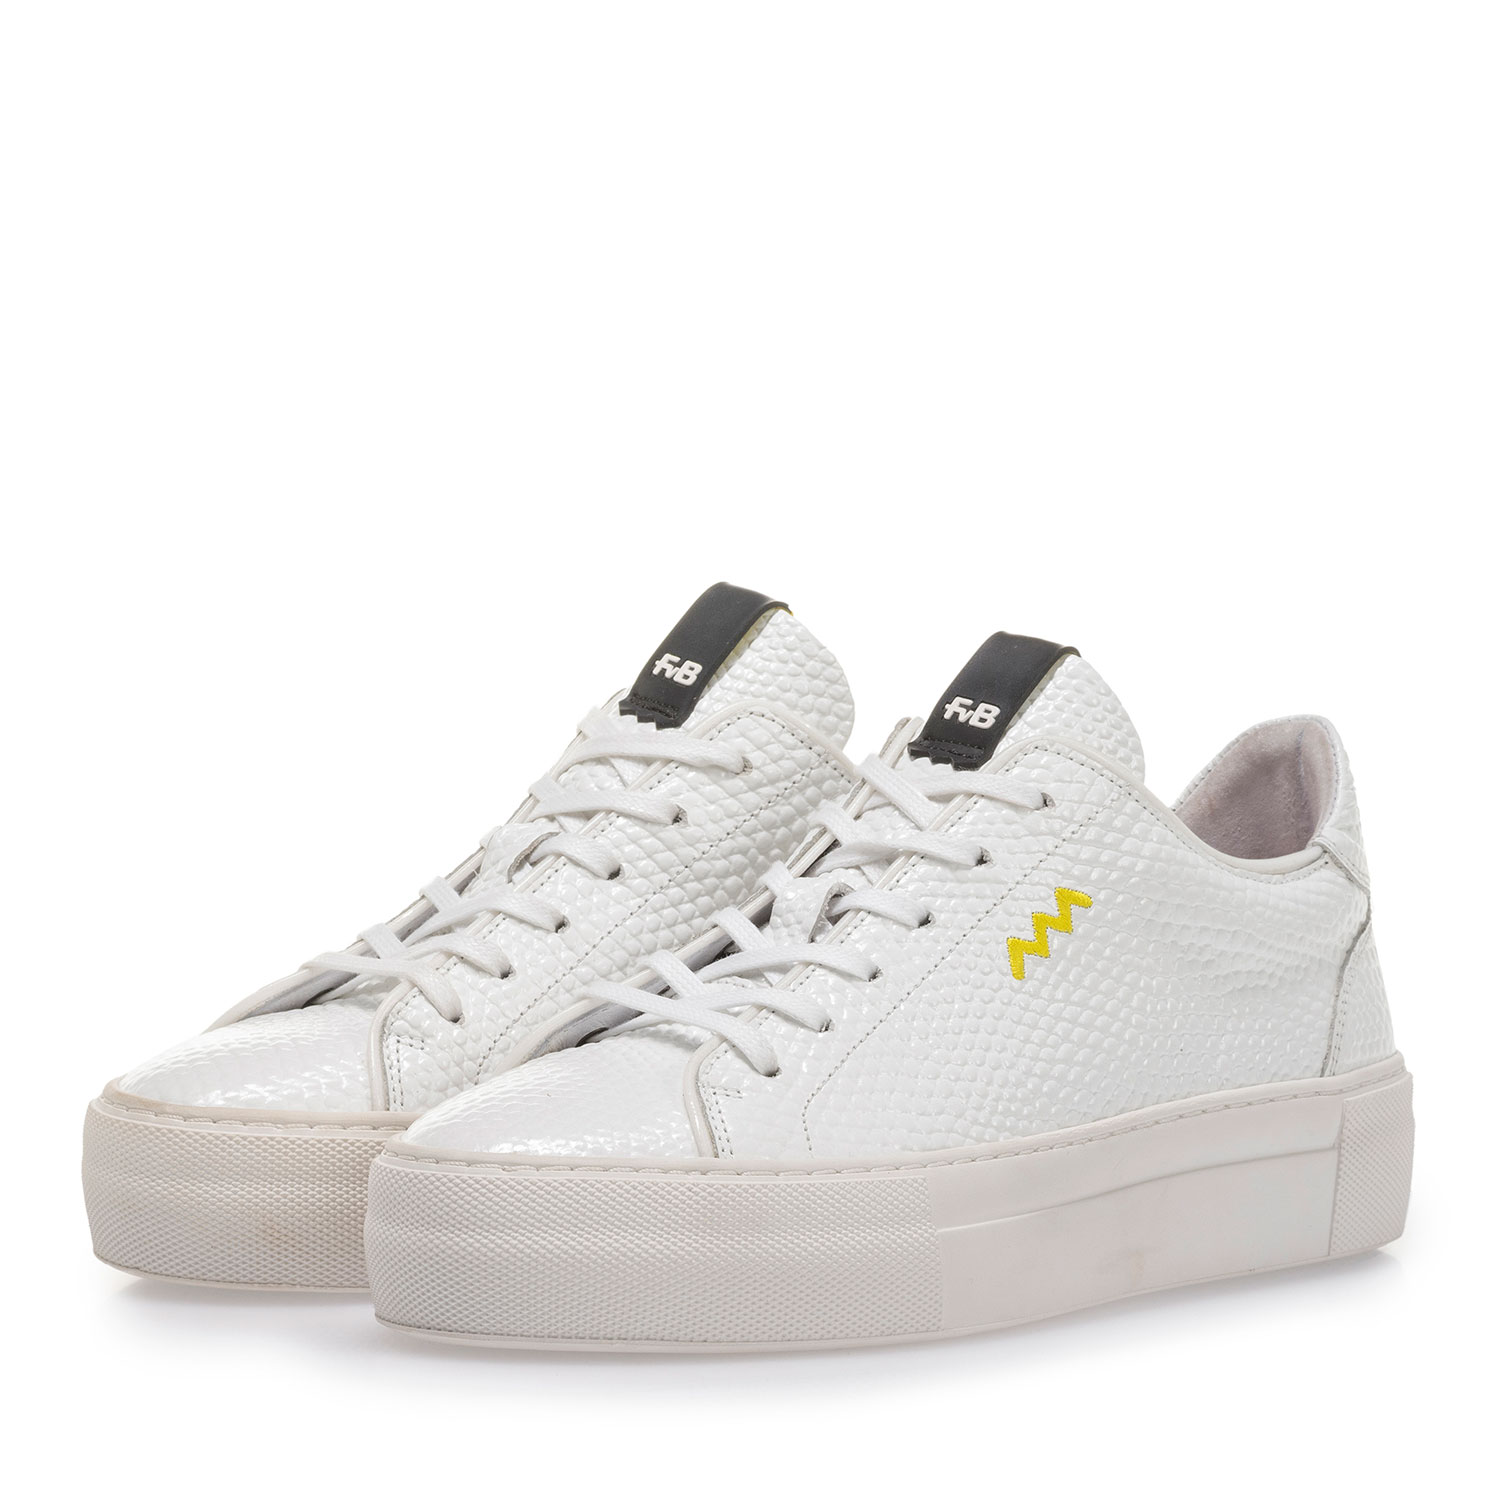 85297/06 - White leather sneaker with fine structure